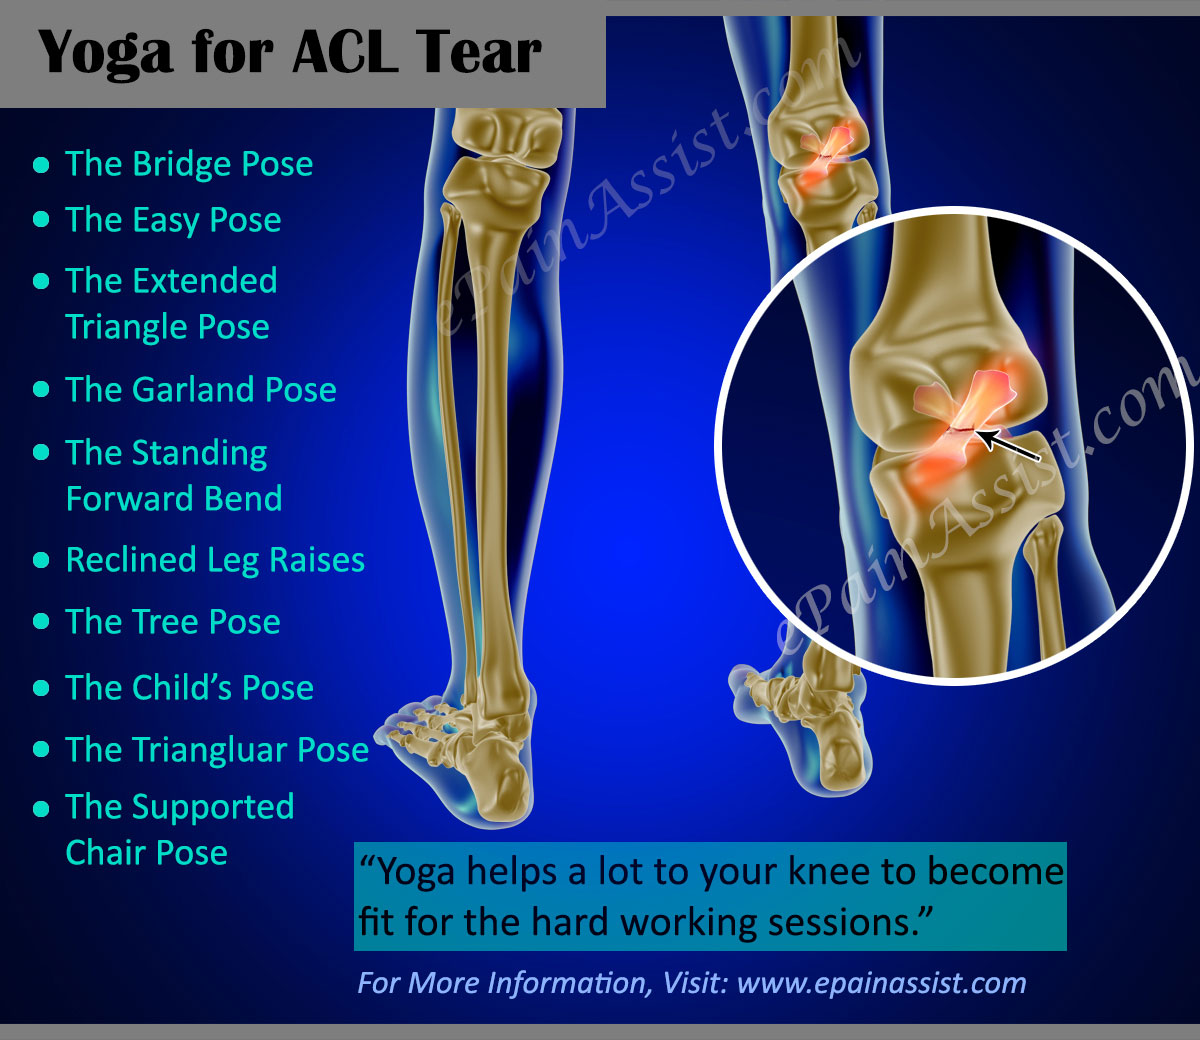 the causes and diagnosis for acl injuries Acl injury is a common sports injury affecting athletes, and women are more susceptible to this injury than men acl is a vital internal stabilizer of the knee joint that connects the lower part of the thigh bone to the upper part of the shin bone.